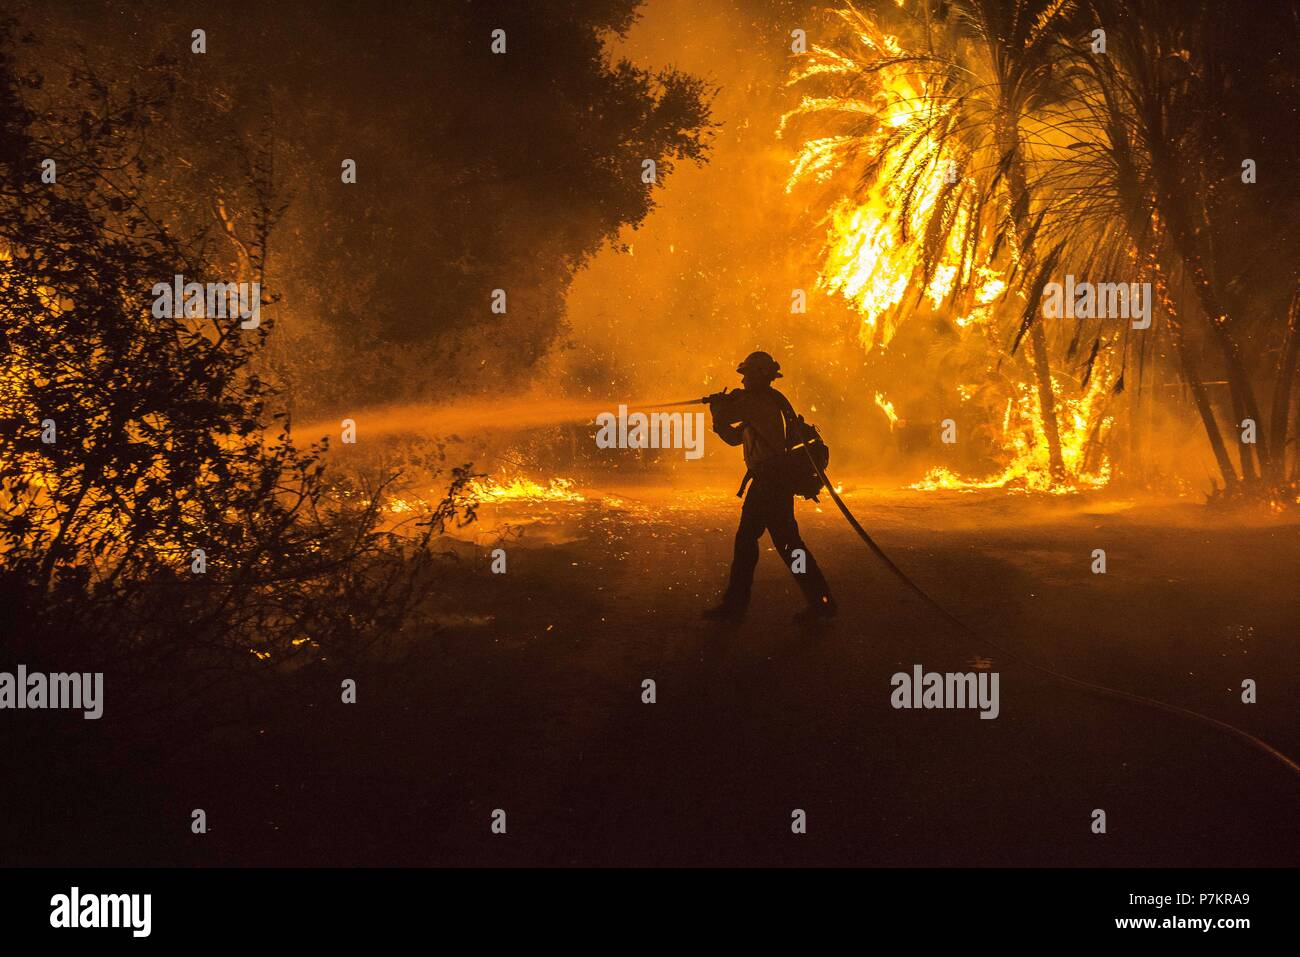 Goleta, California, USA. 6th July, 2018. A Firefighter fights the Holiday Fire north of Fairview Avenue Friday evening. Amid a record-setting heat wave in Southern California, the Holiday Fire burned up to 20 structures and 2,000 people were evacuated. Credit: Erick Madrid/ZUMA Wire/Alamy Live News - Stock Image